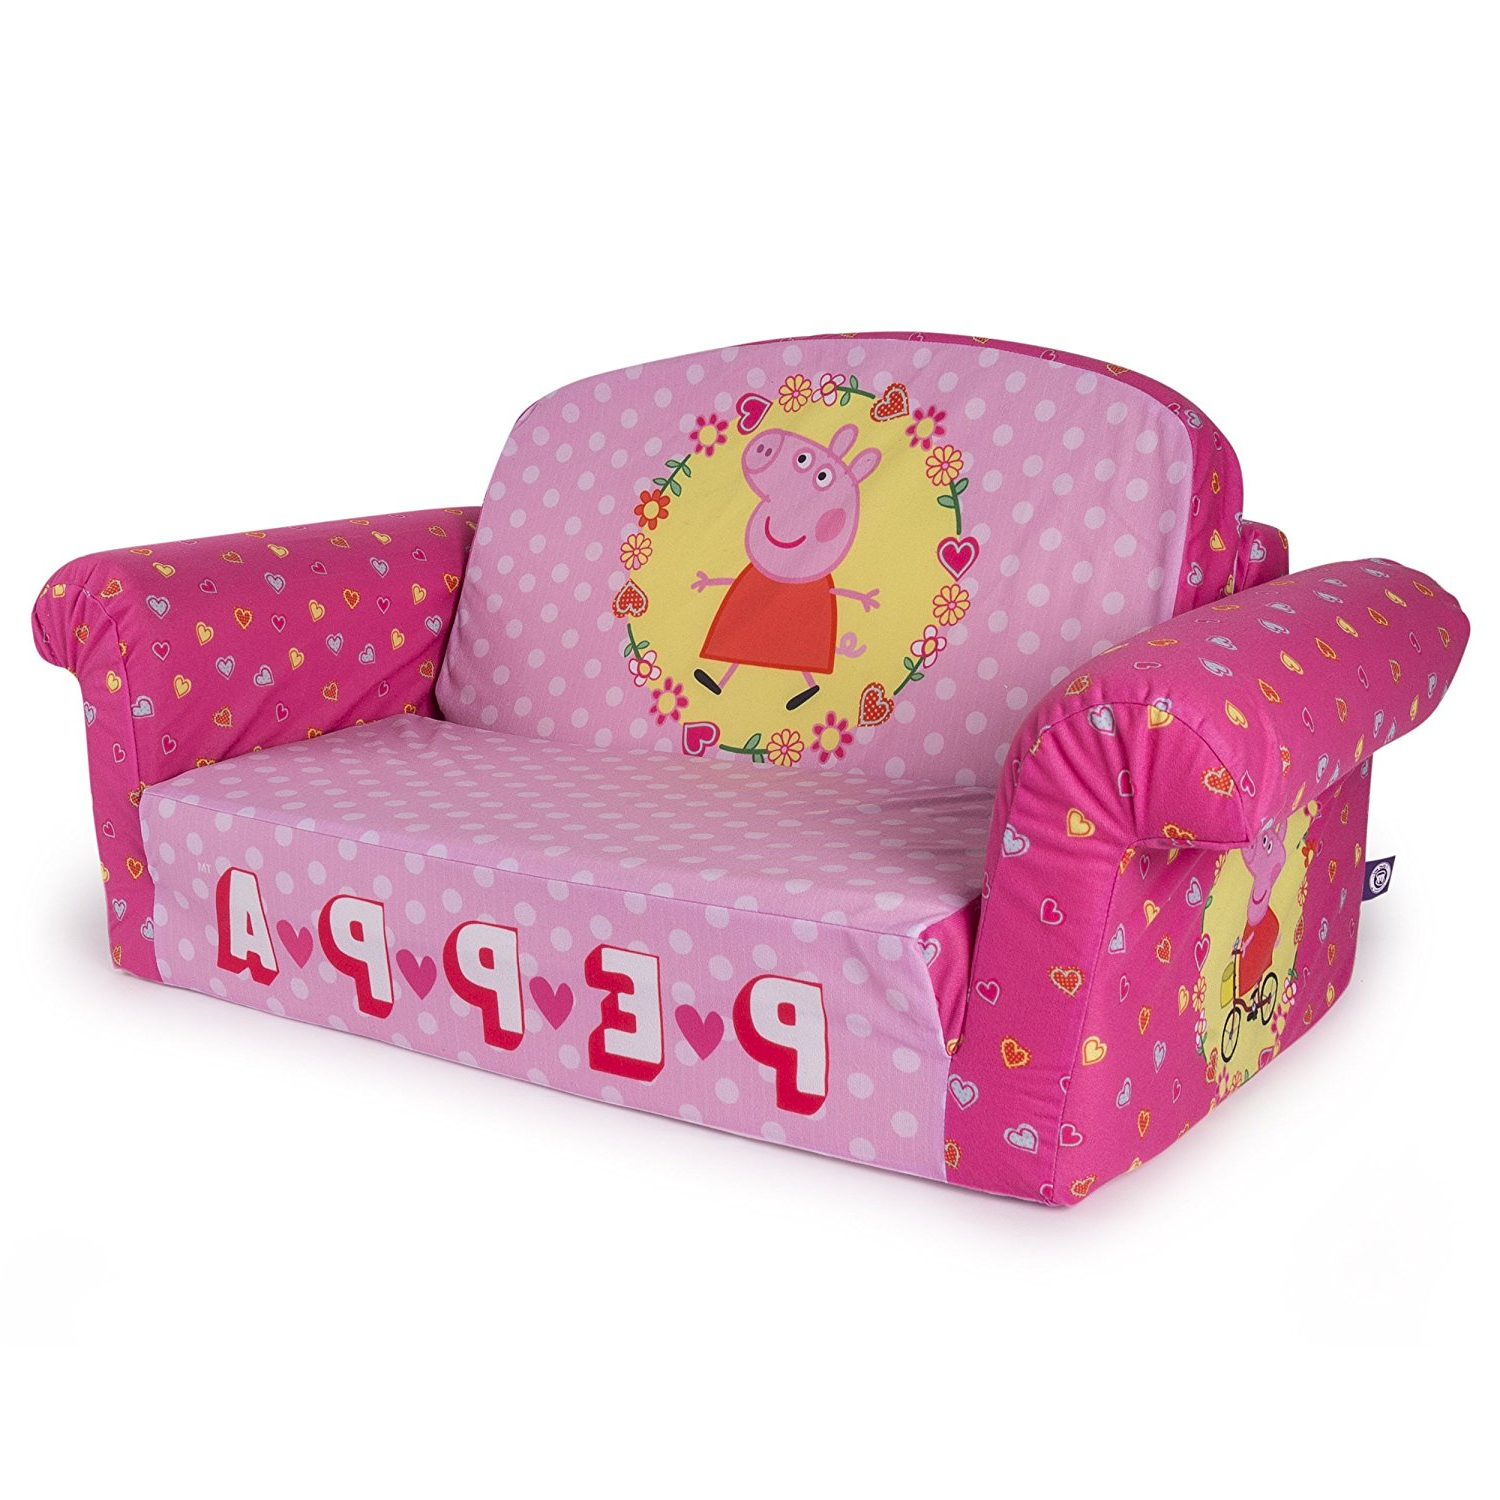 Most Popular Bedroom : Sofa For Children's Room Kid Sized Couch Childrens Sofa With Regard To Childrens Sofa Bed Chairs (View 11 of 20)